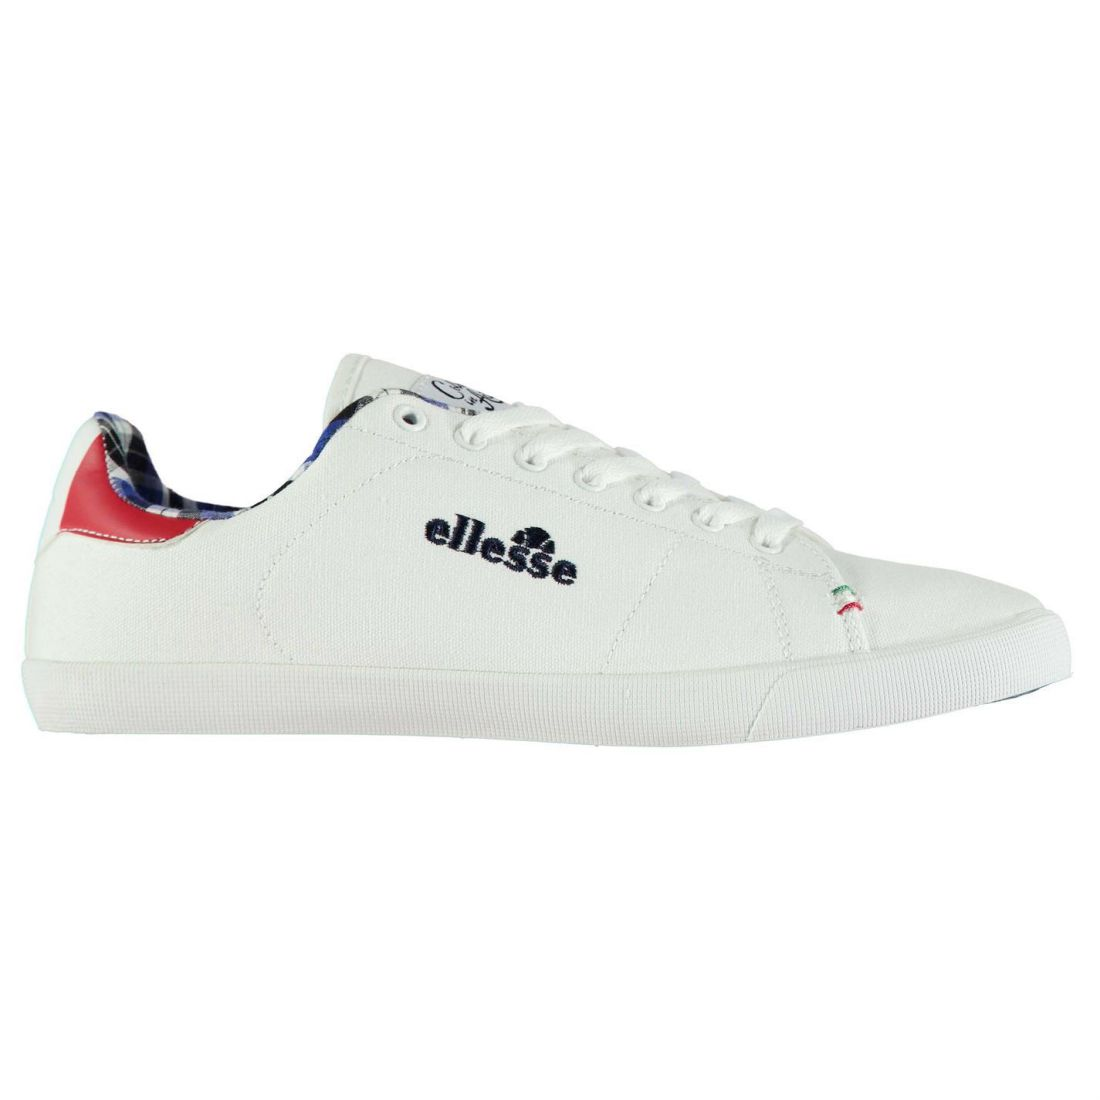 b5a36c7fd1a Ellesse Mota Shoe Mens Gents Canvas Low Shoes Laces Fastened Padded ...